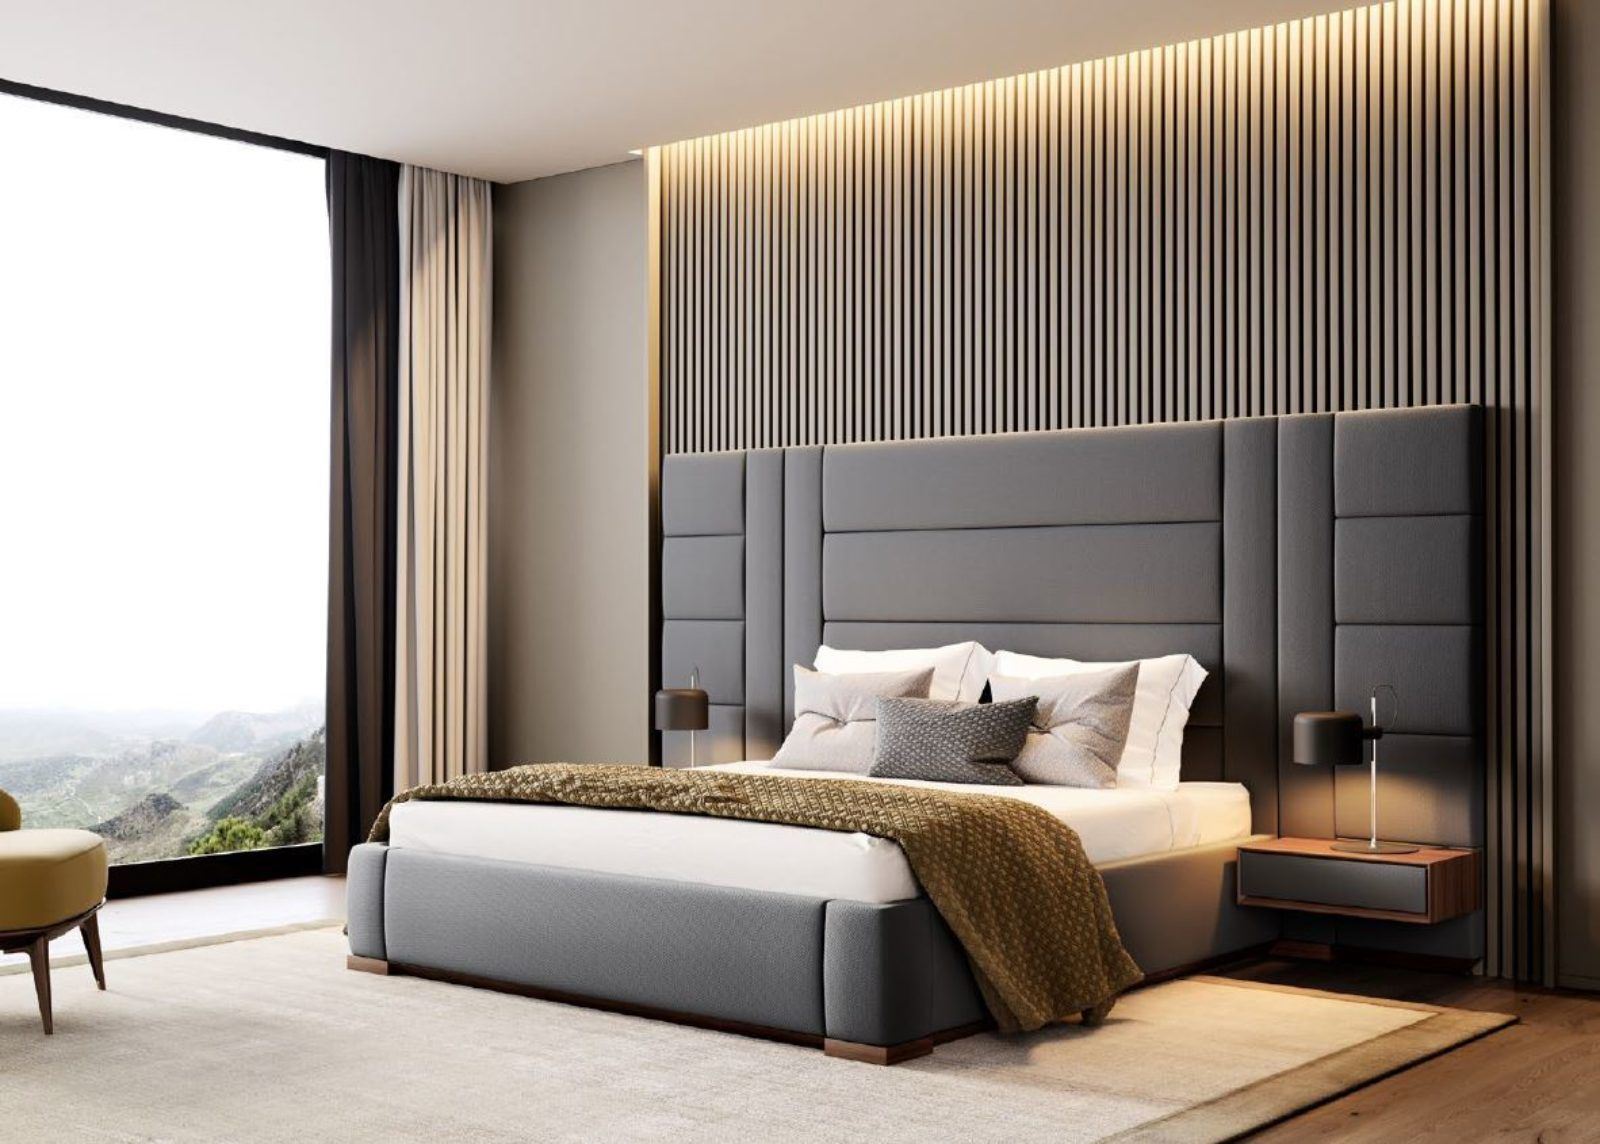 Alvor Bedroom | ZOLi Contemporary Living in 2019 | Room ...